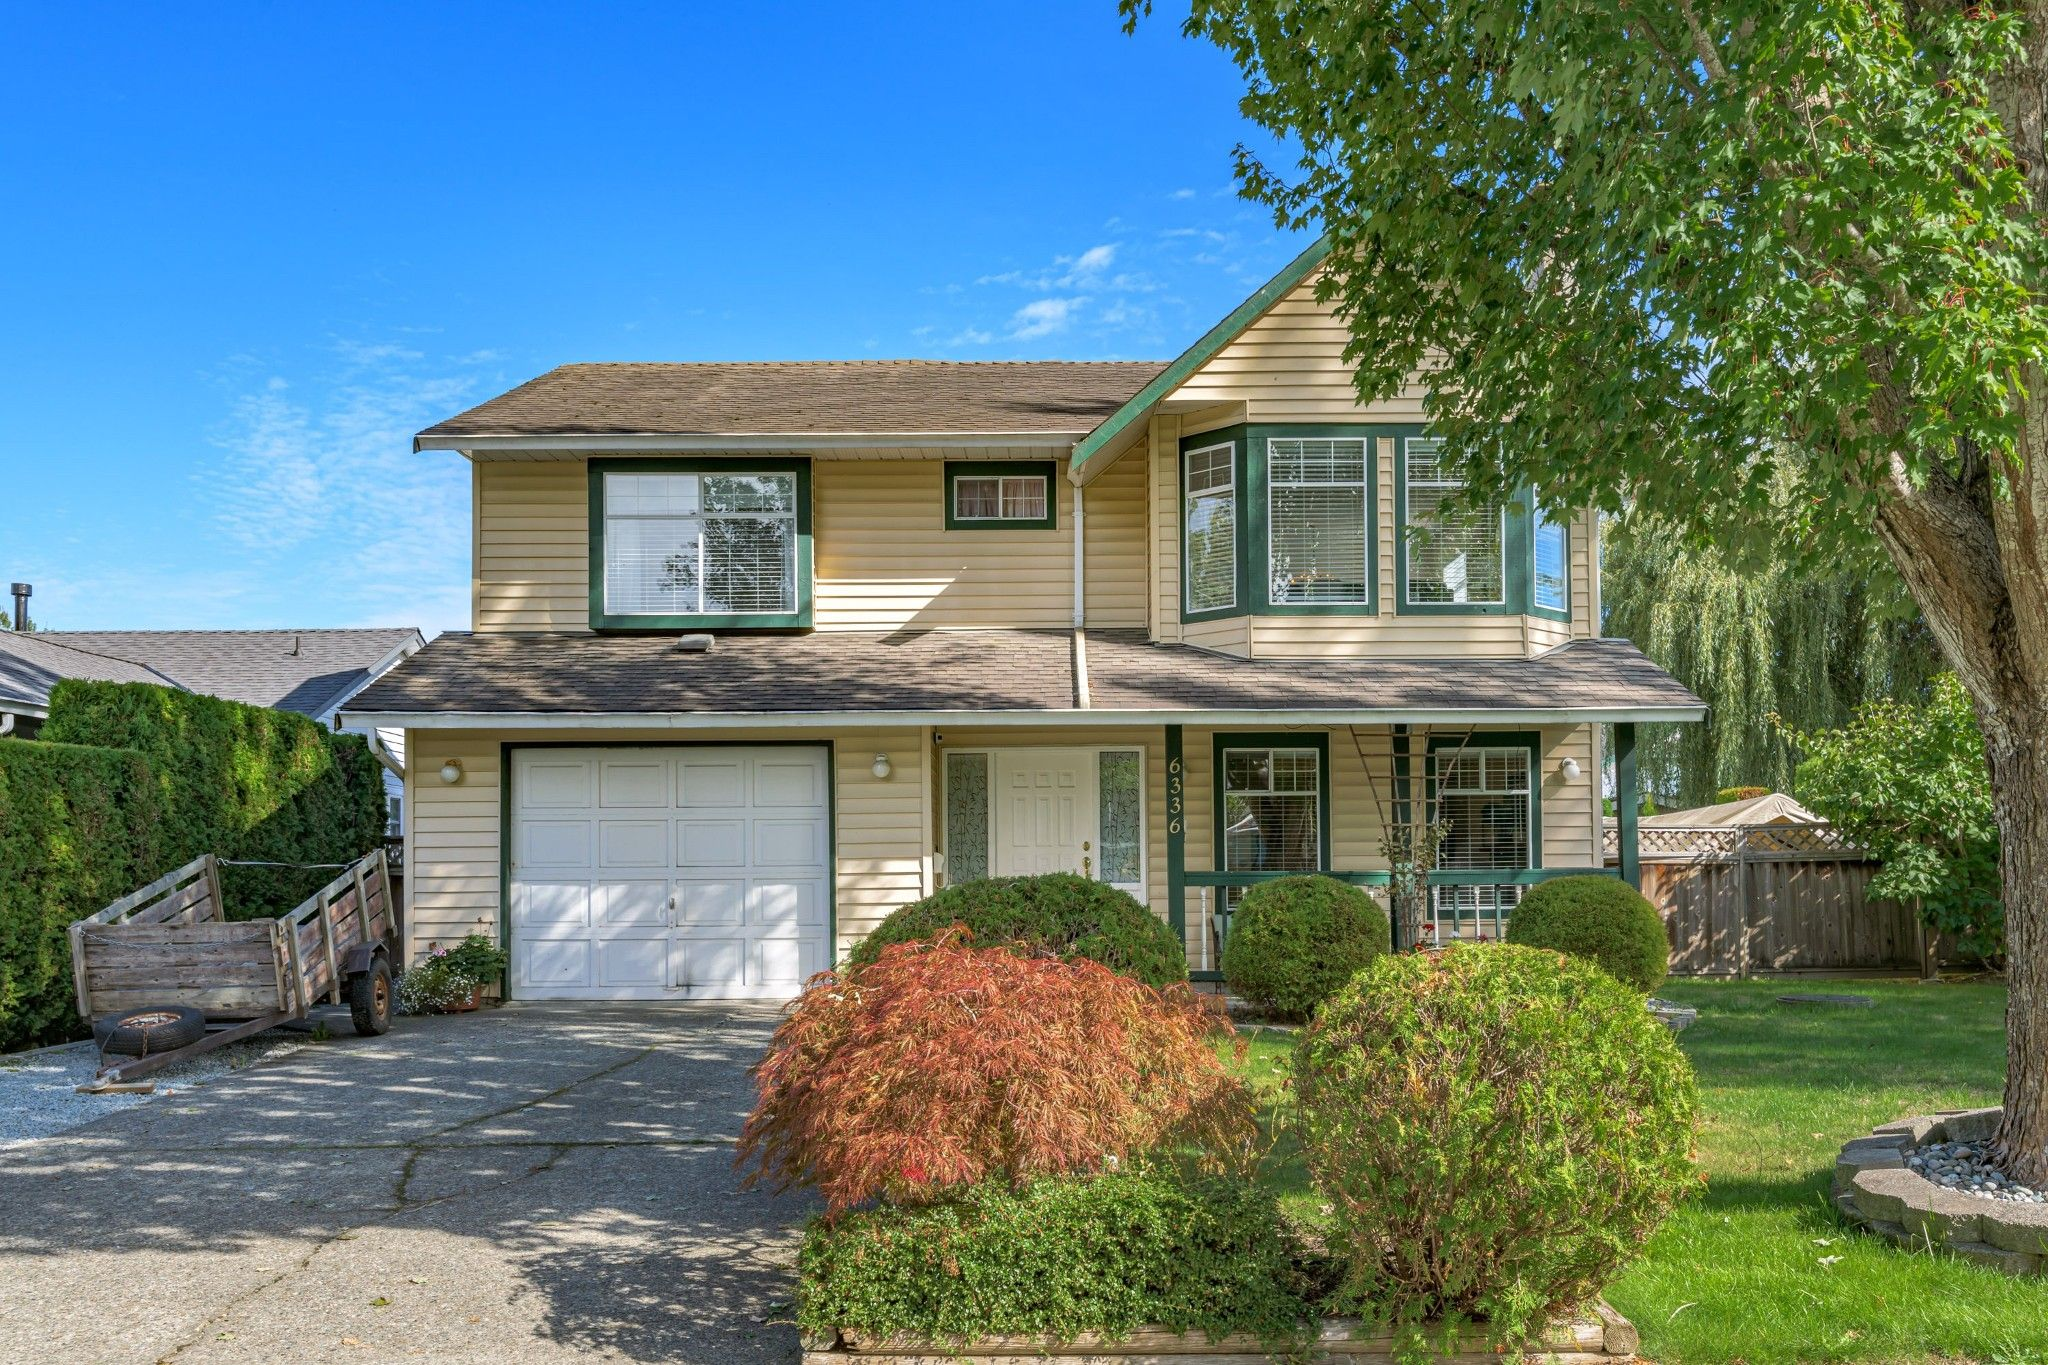 Main Photo: 6336 172 Street in Cloverdale: Cloverdale BC House for sale : MLS®# R2620518